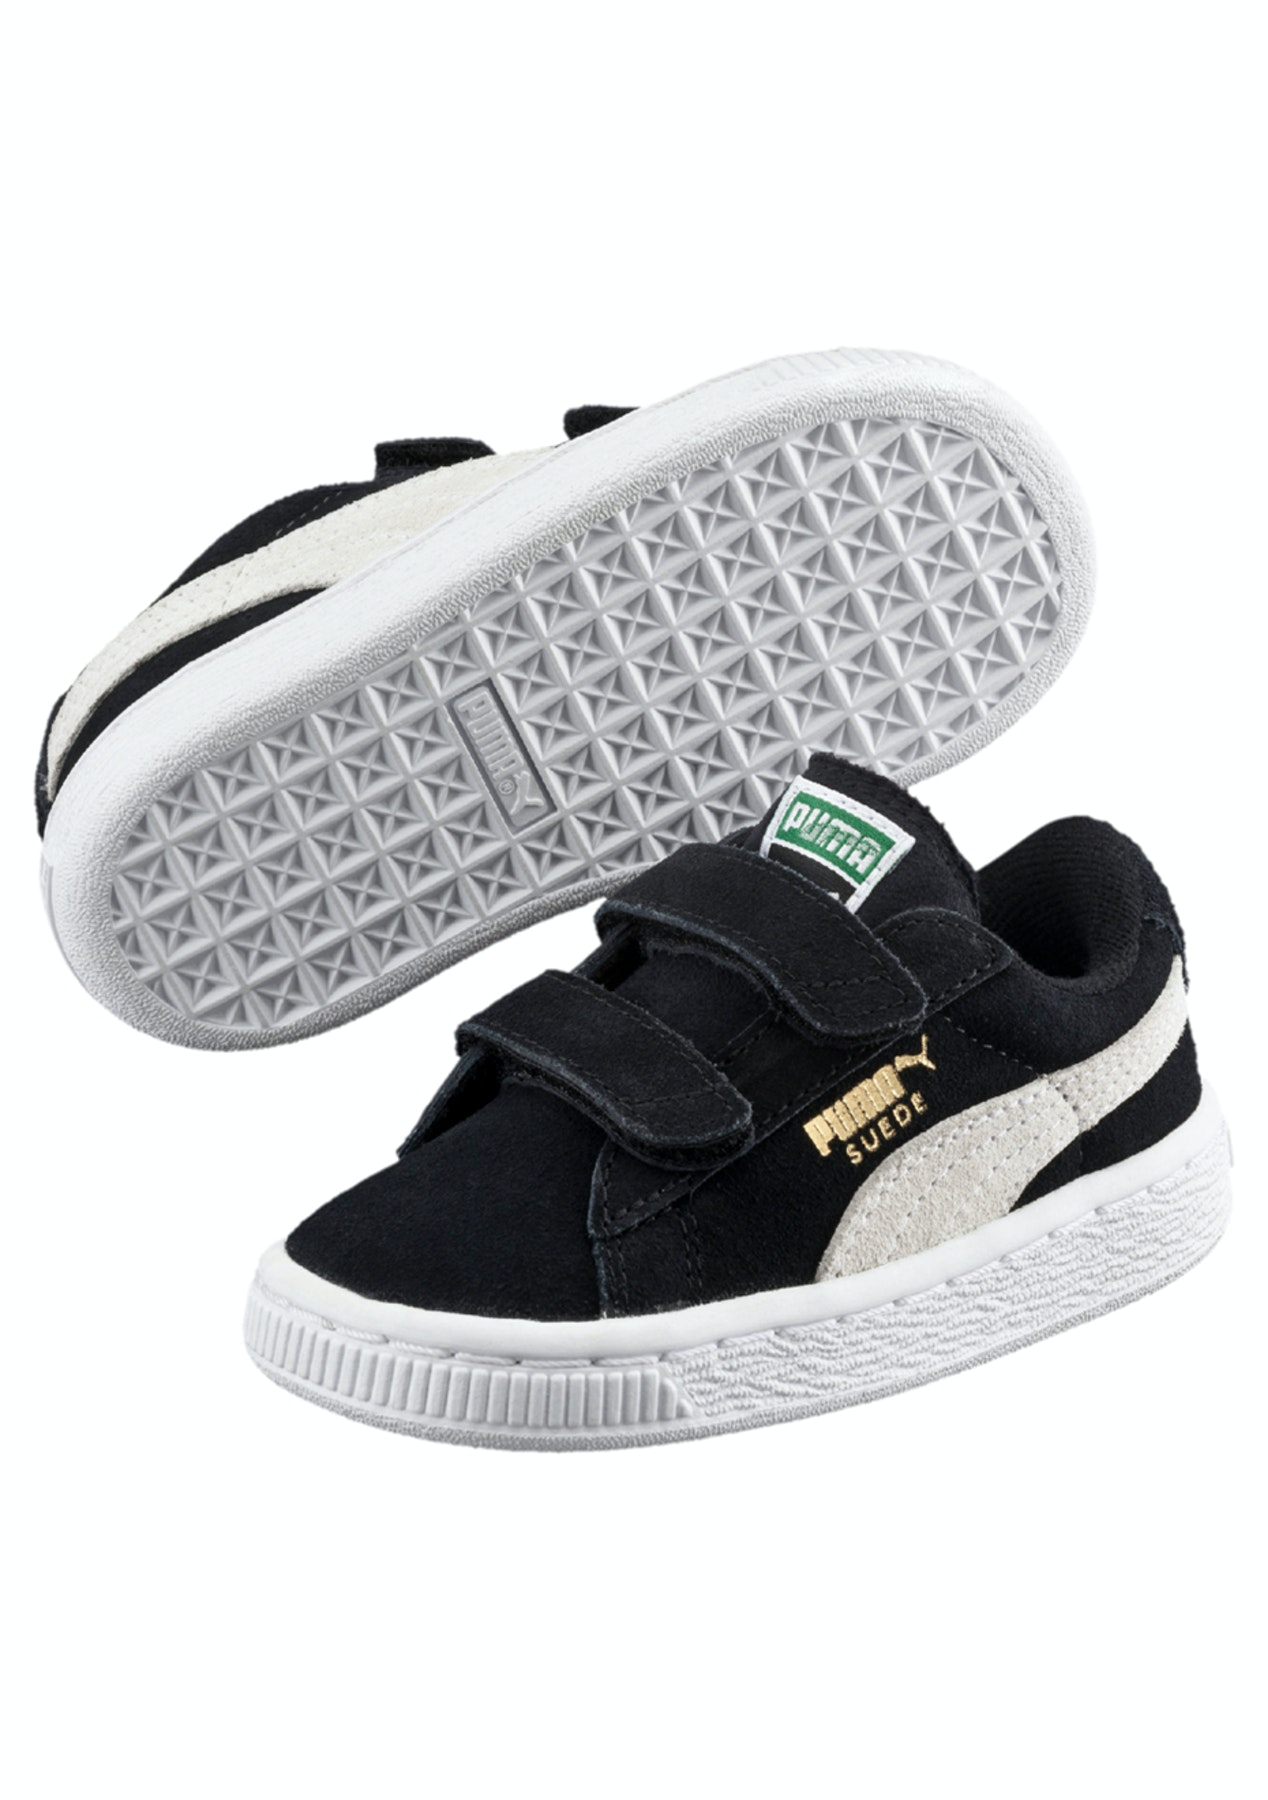 new product 631ab 88f59 Puma - Suede 2 Straps Kids Black